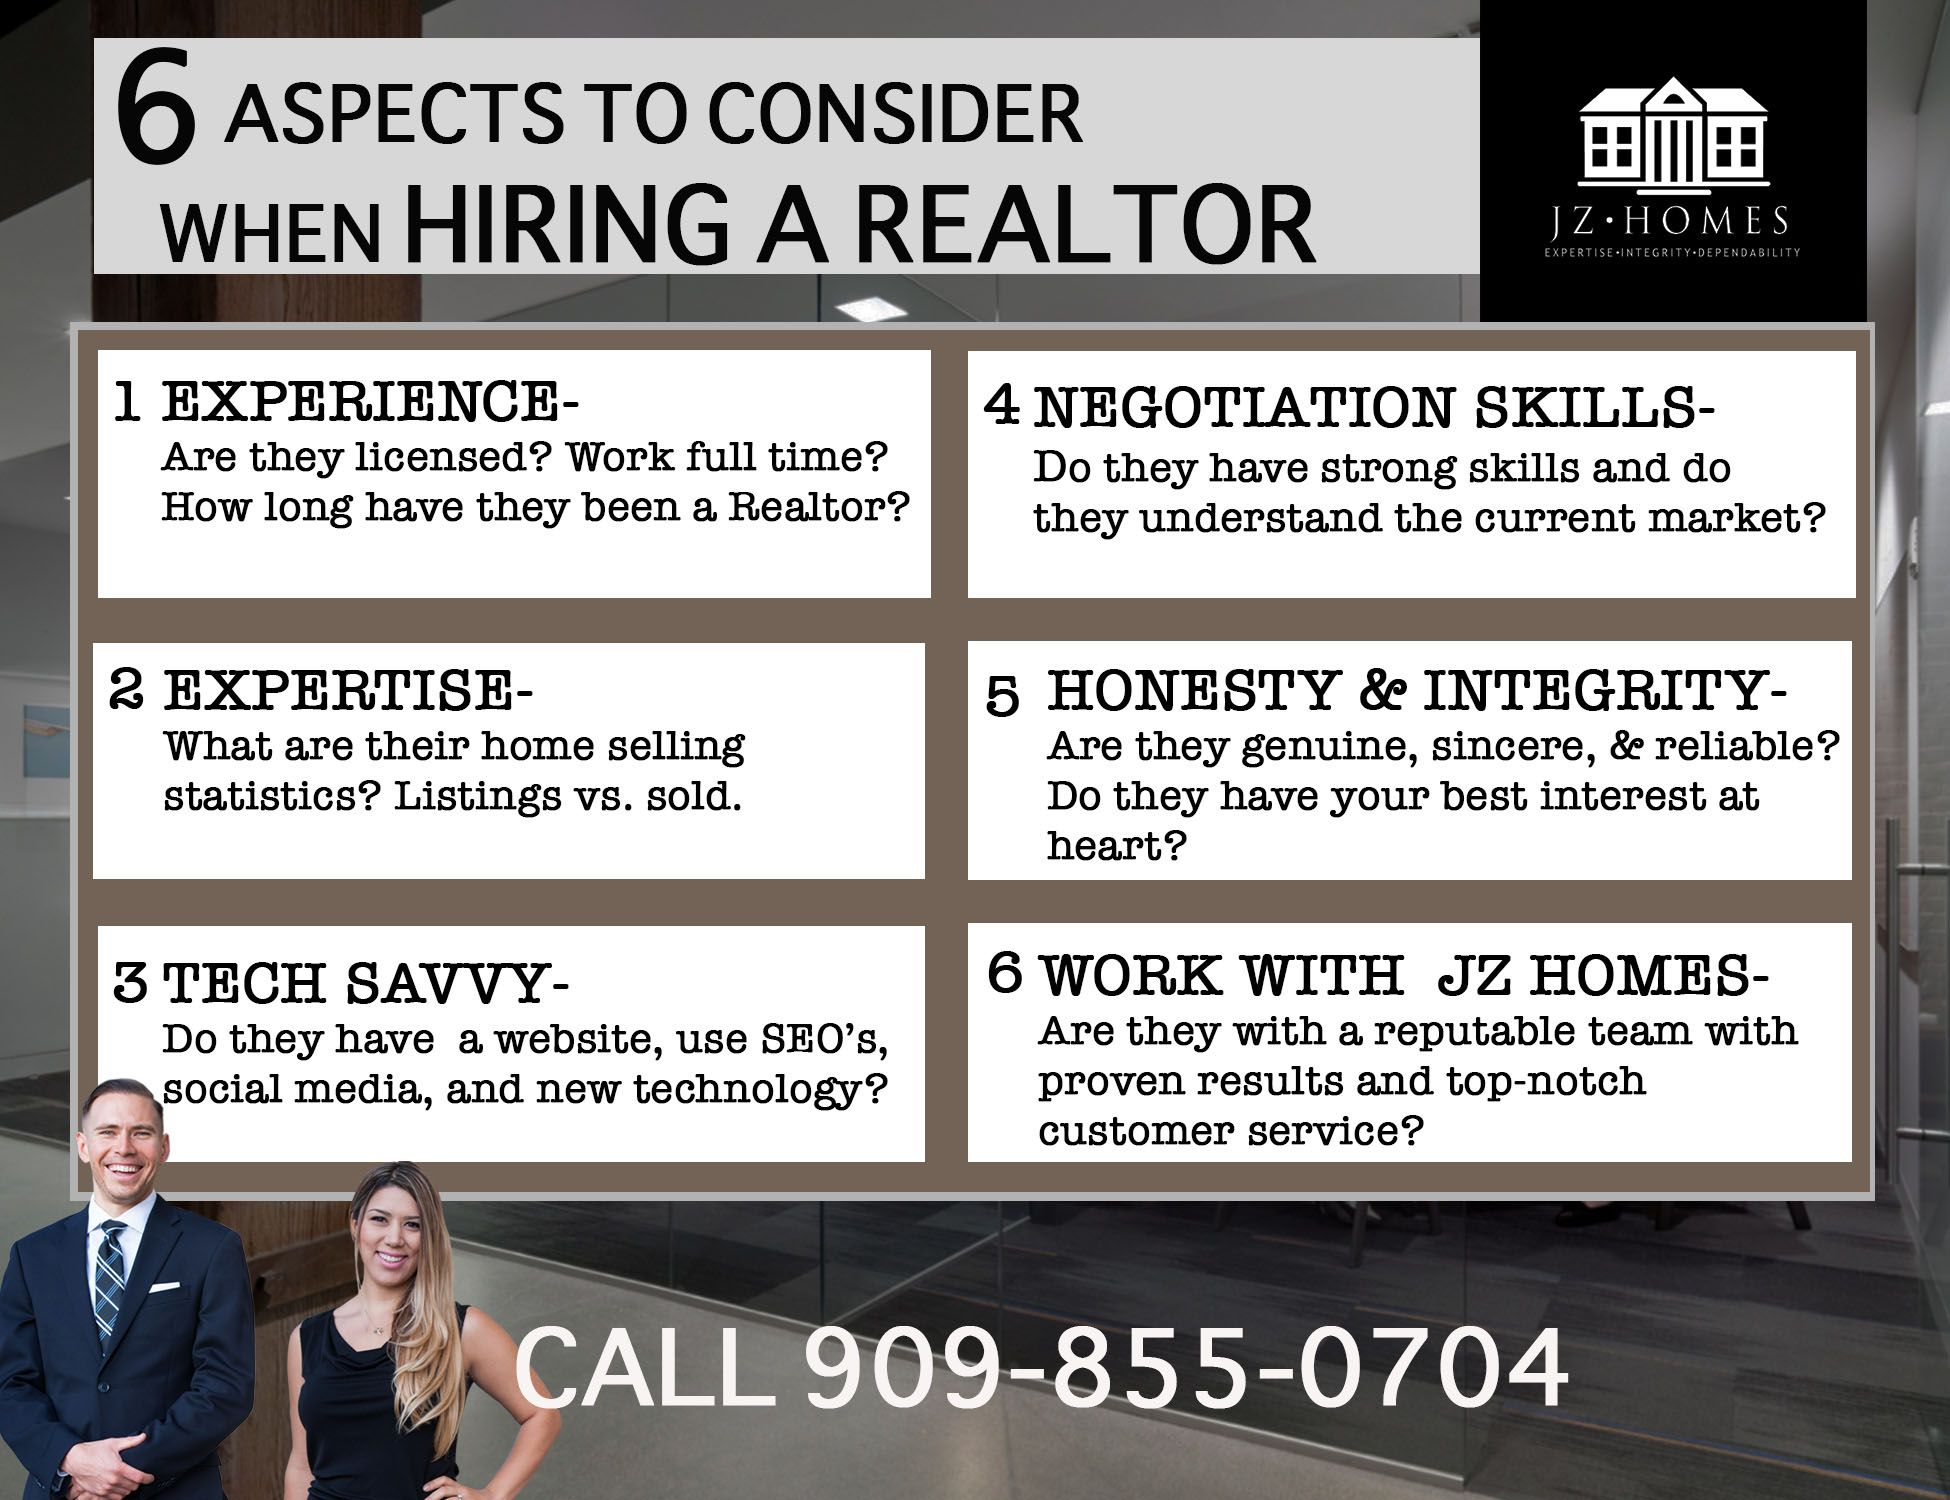 6 aspects to consider when hiring a realtor to view homes